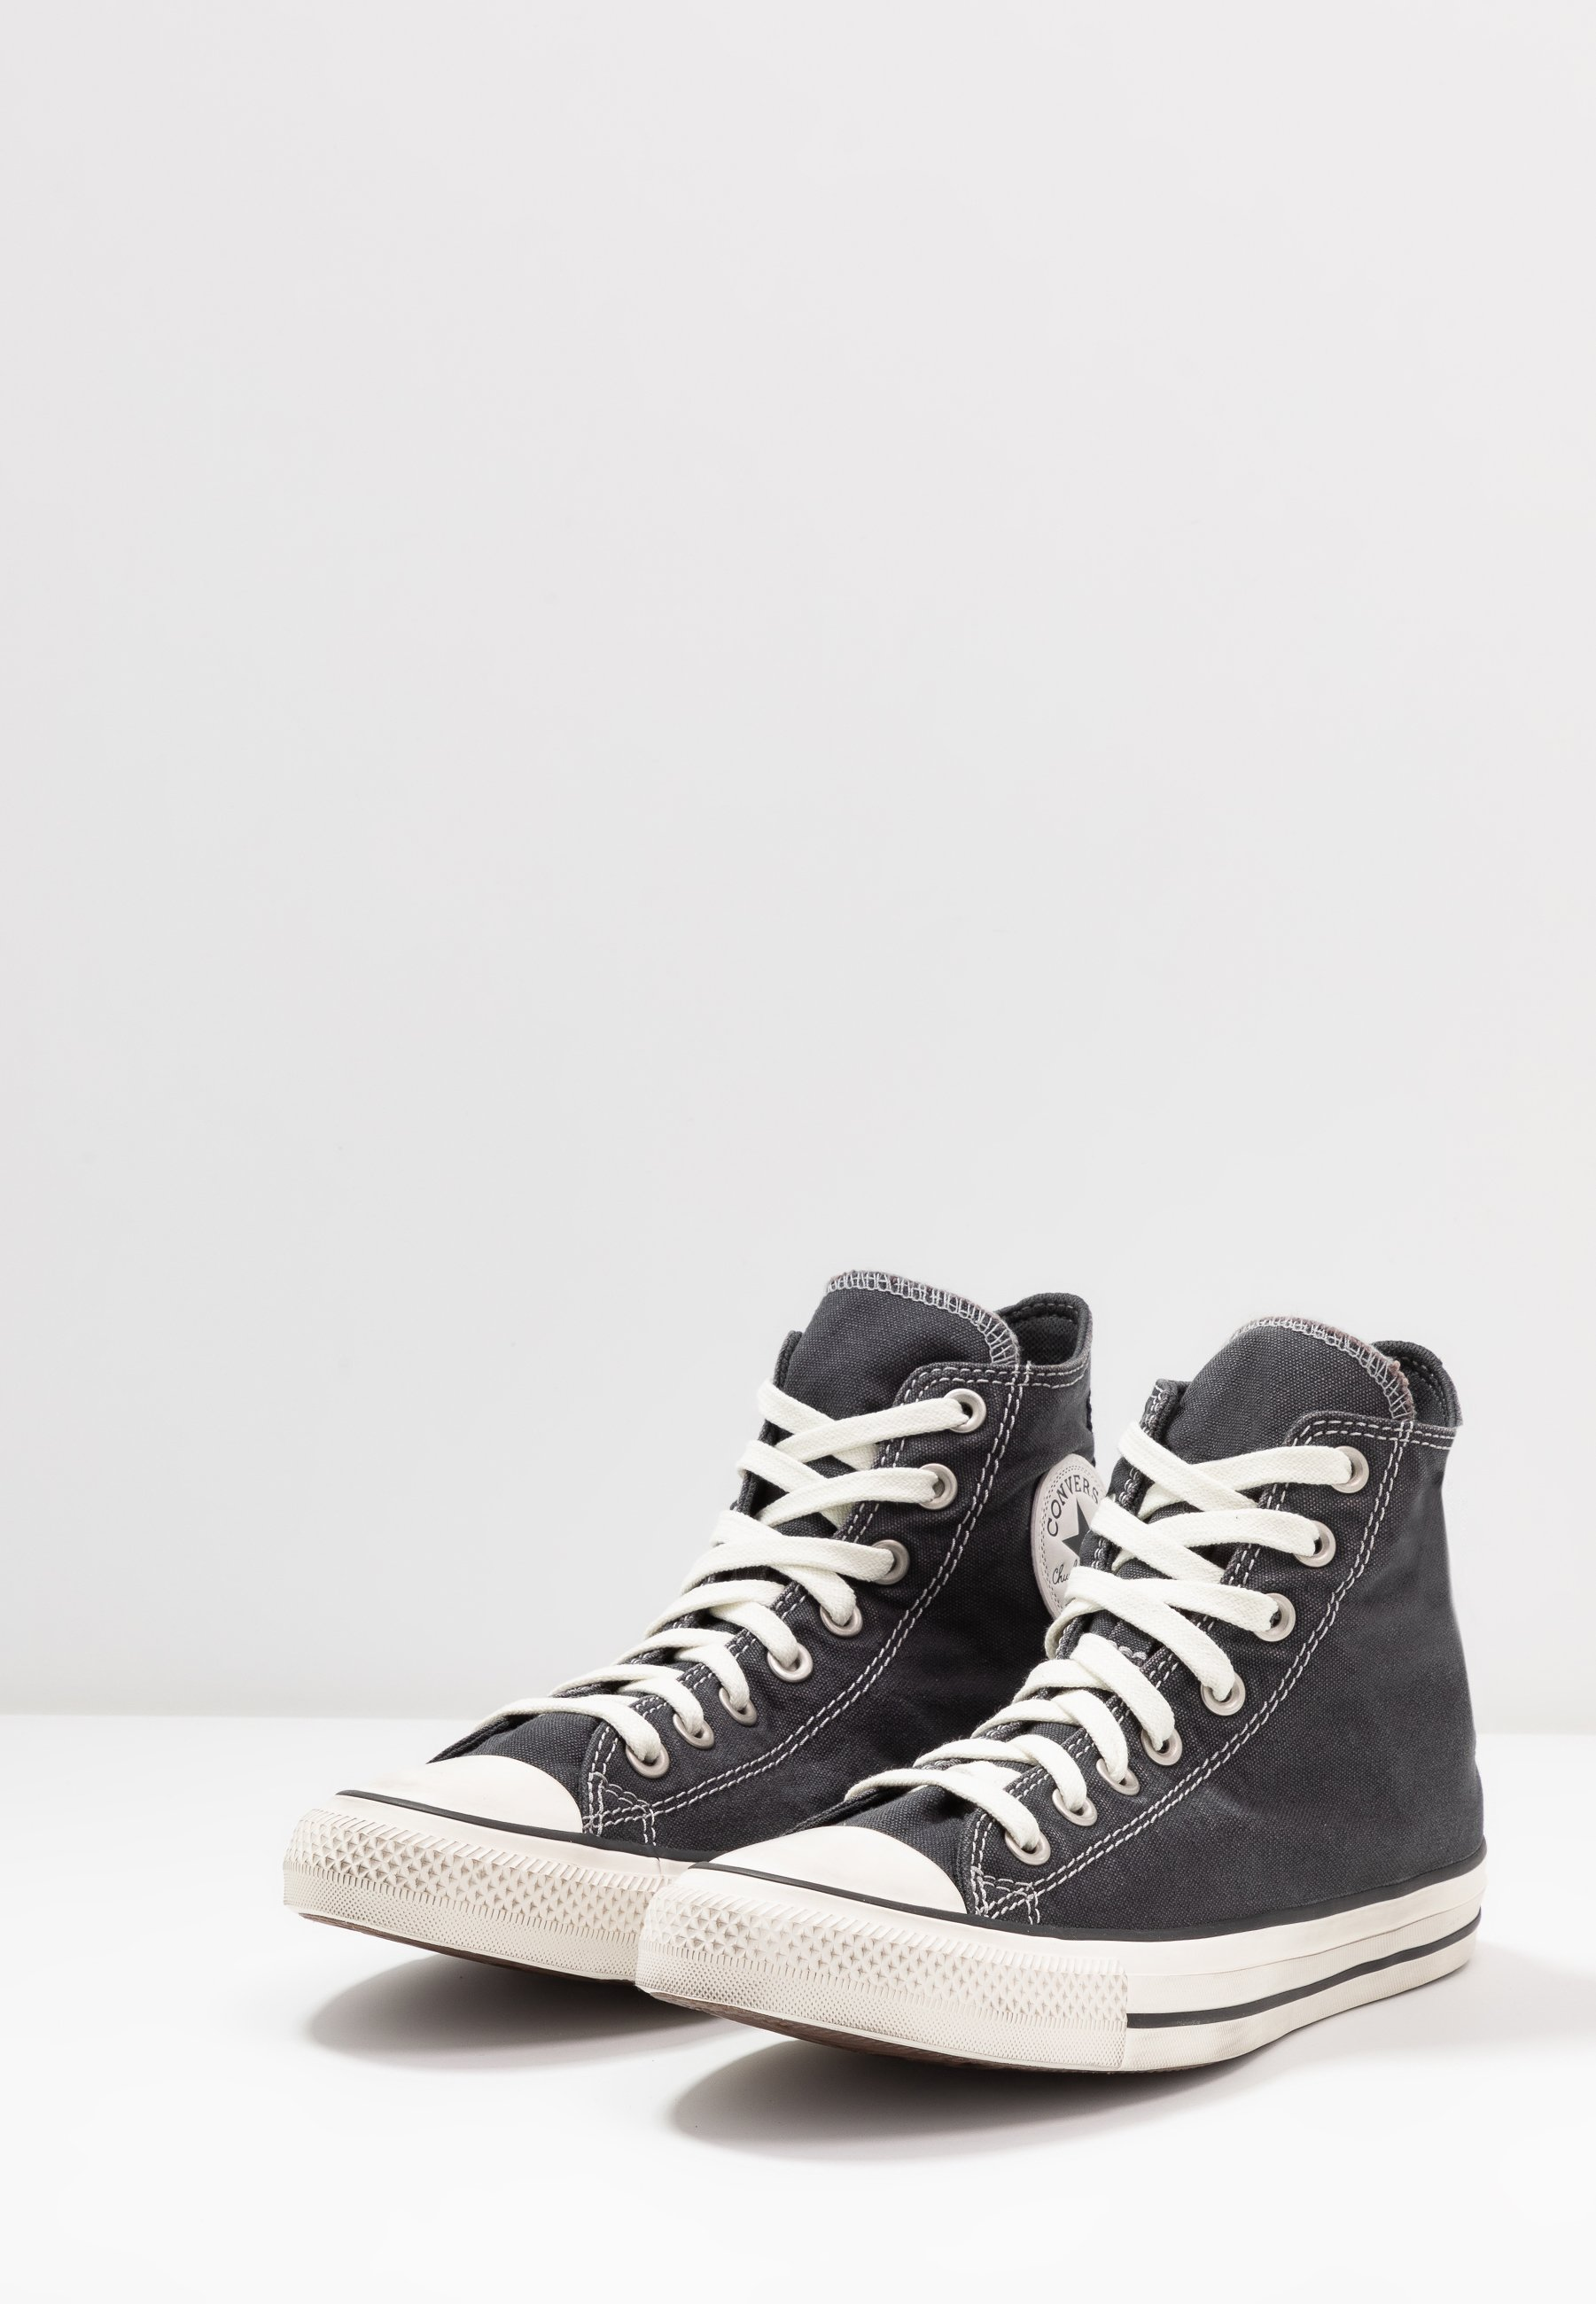 Converse CHUCK TAYLOR ALL STAR - Sneakers high - colorway